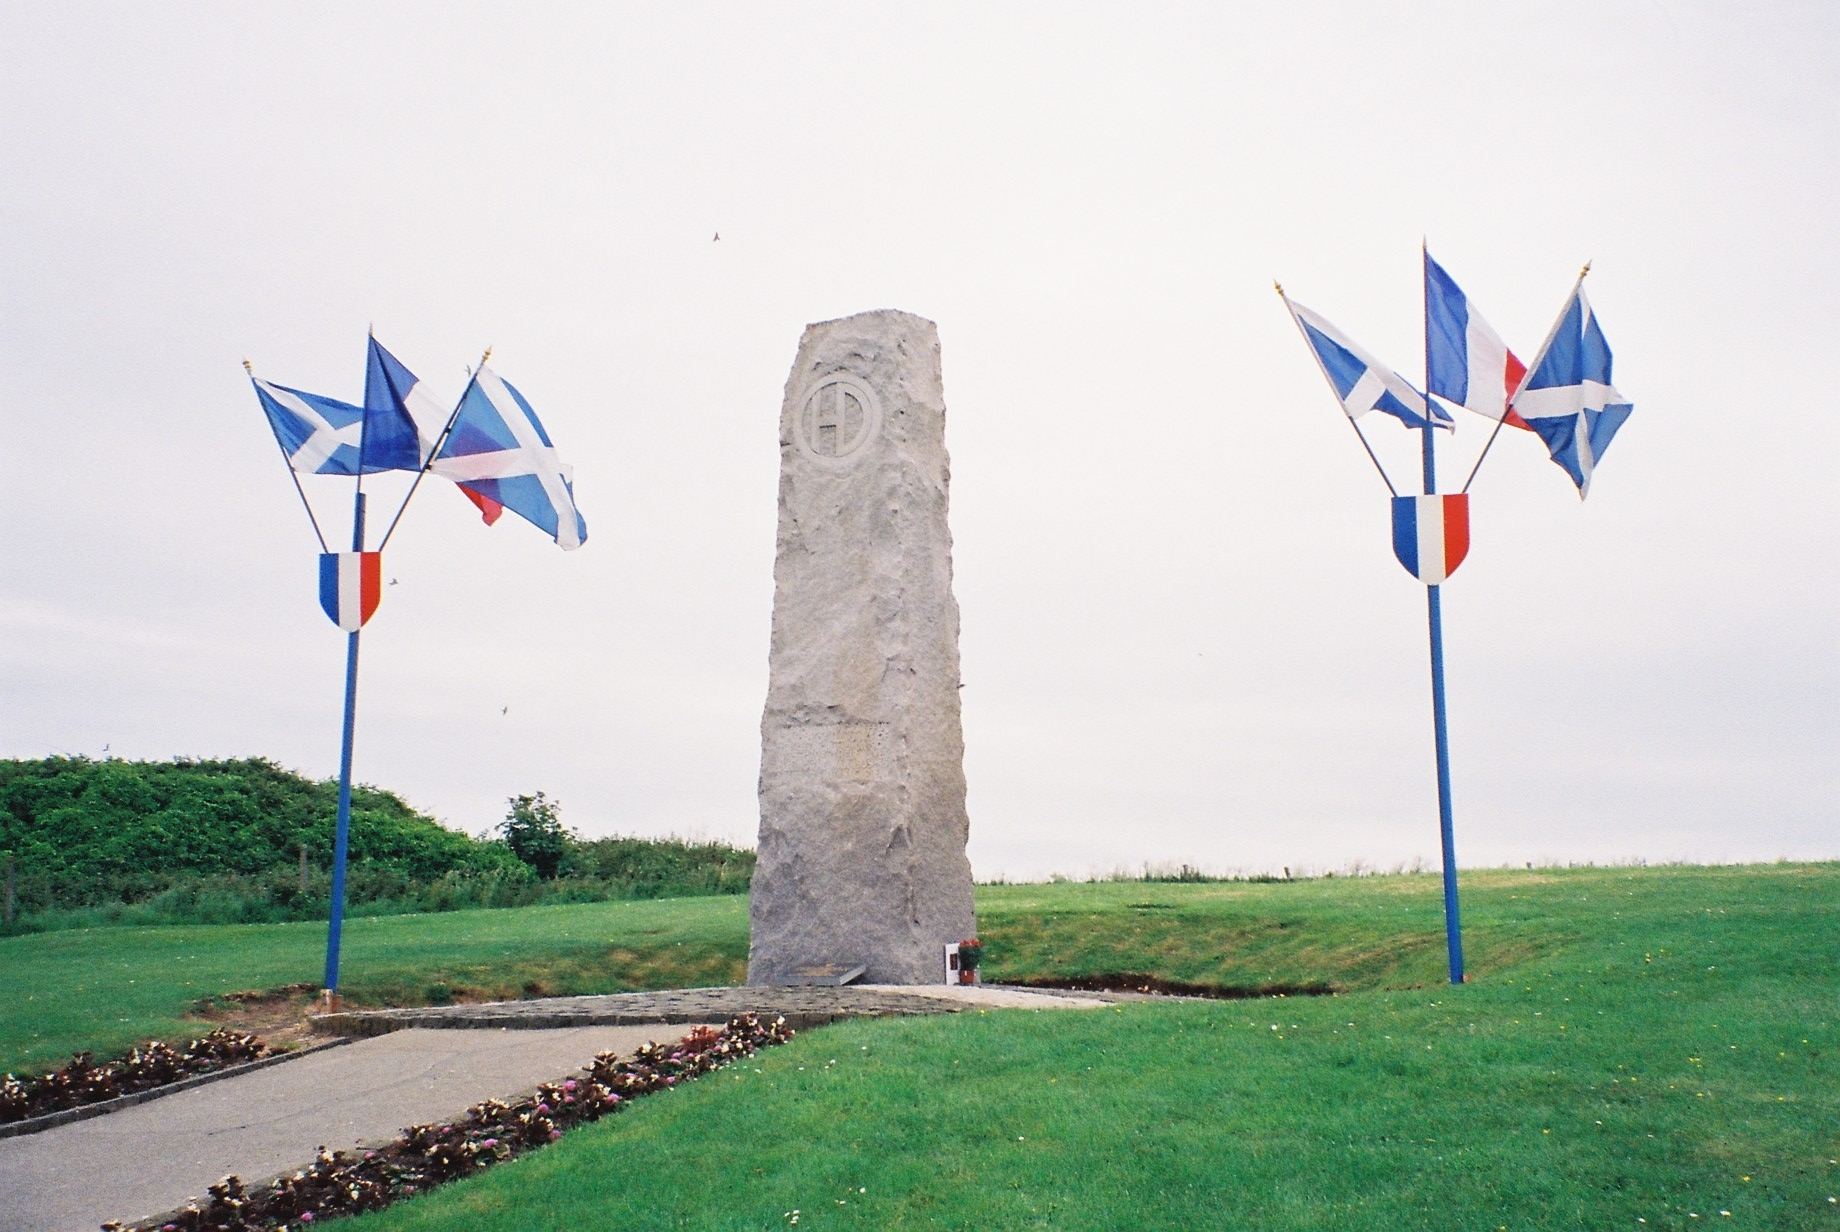 51st HD monument (photo taken June 2009)